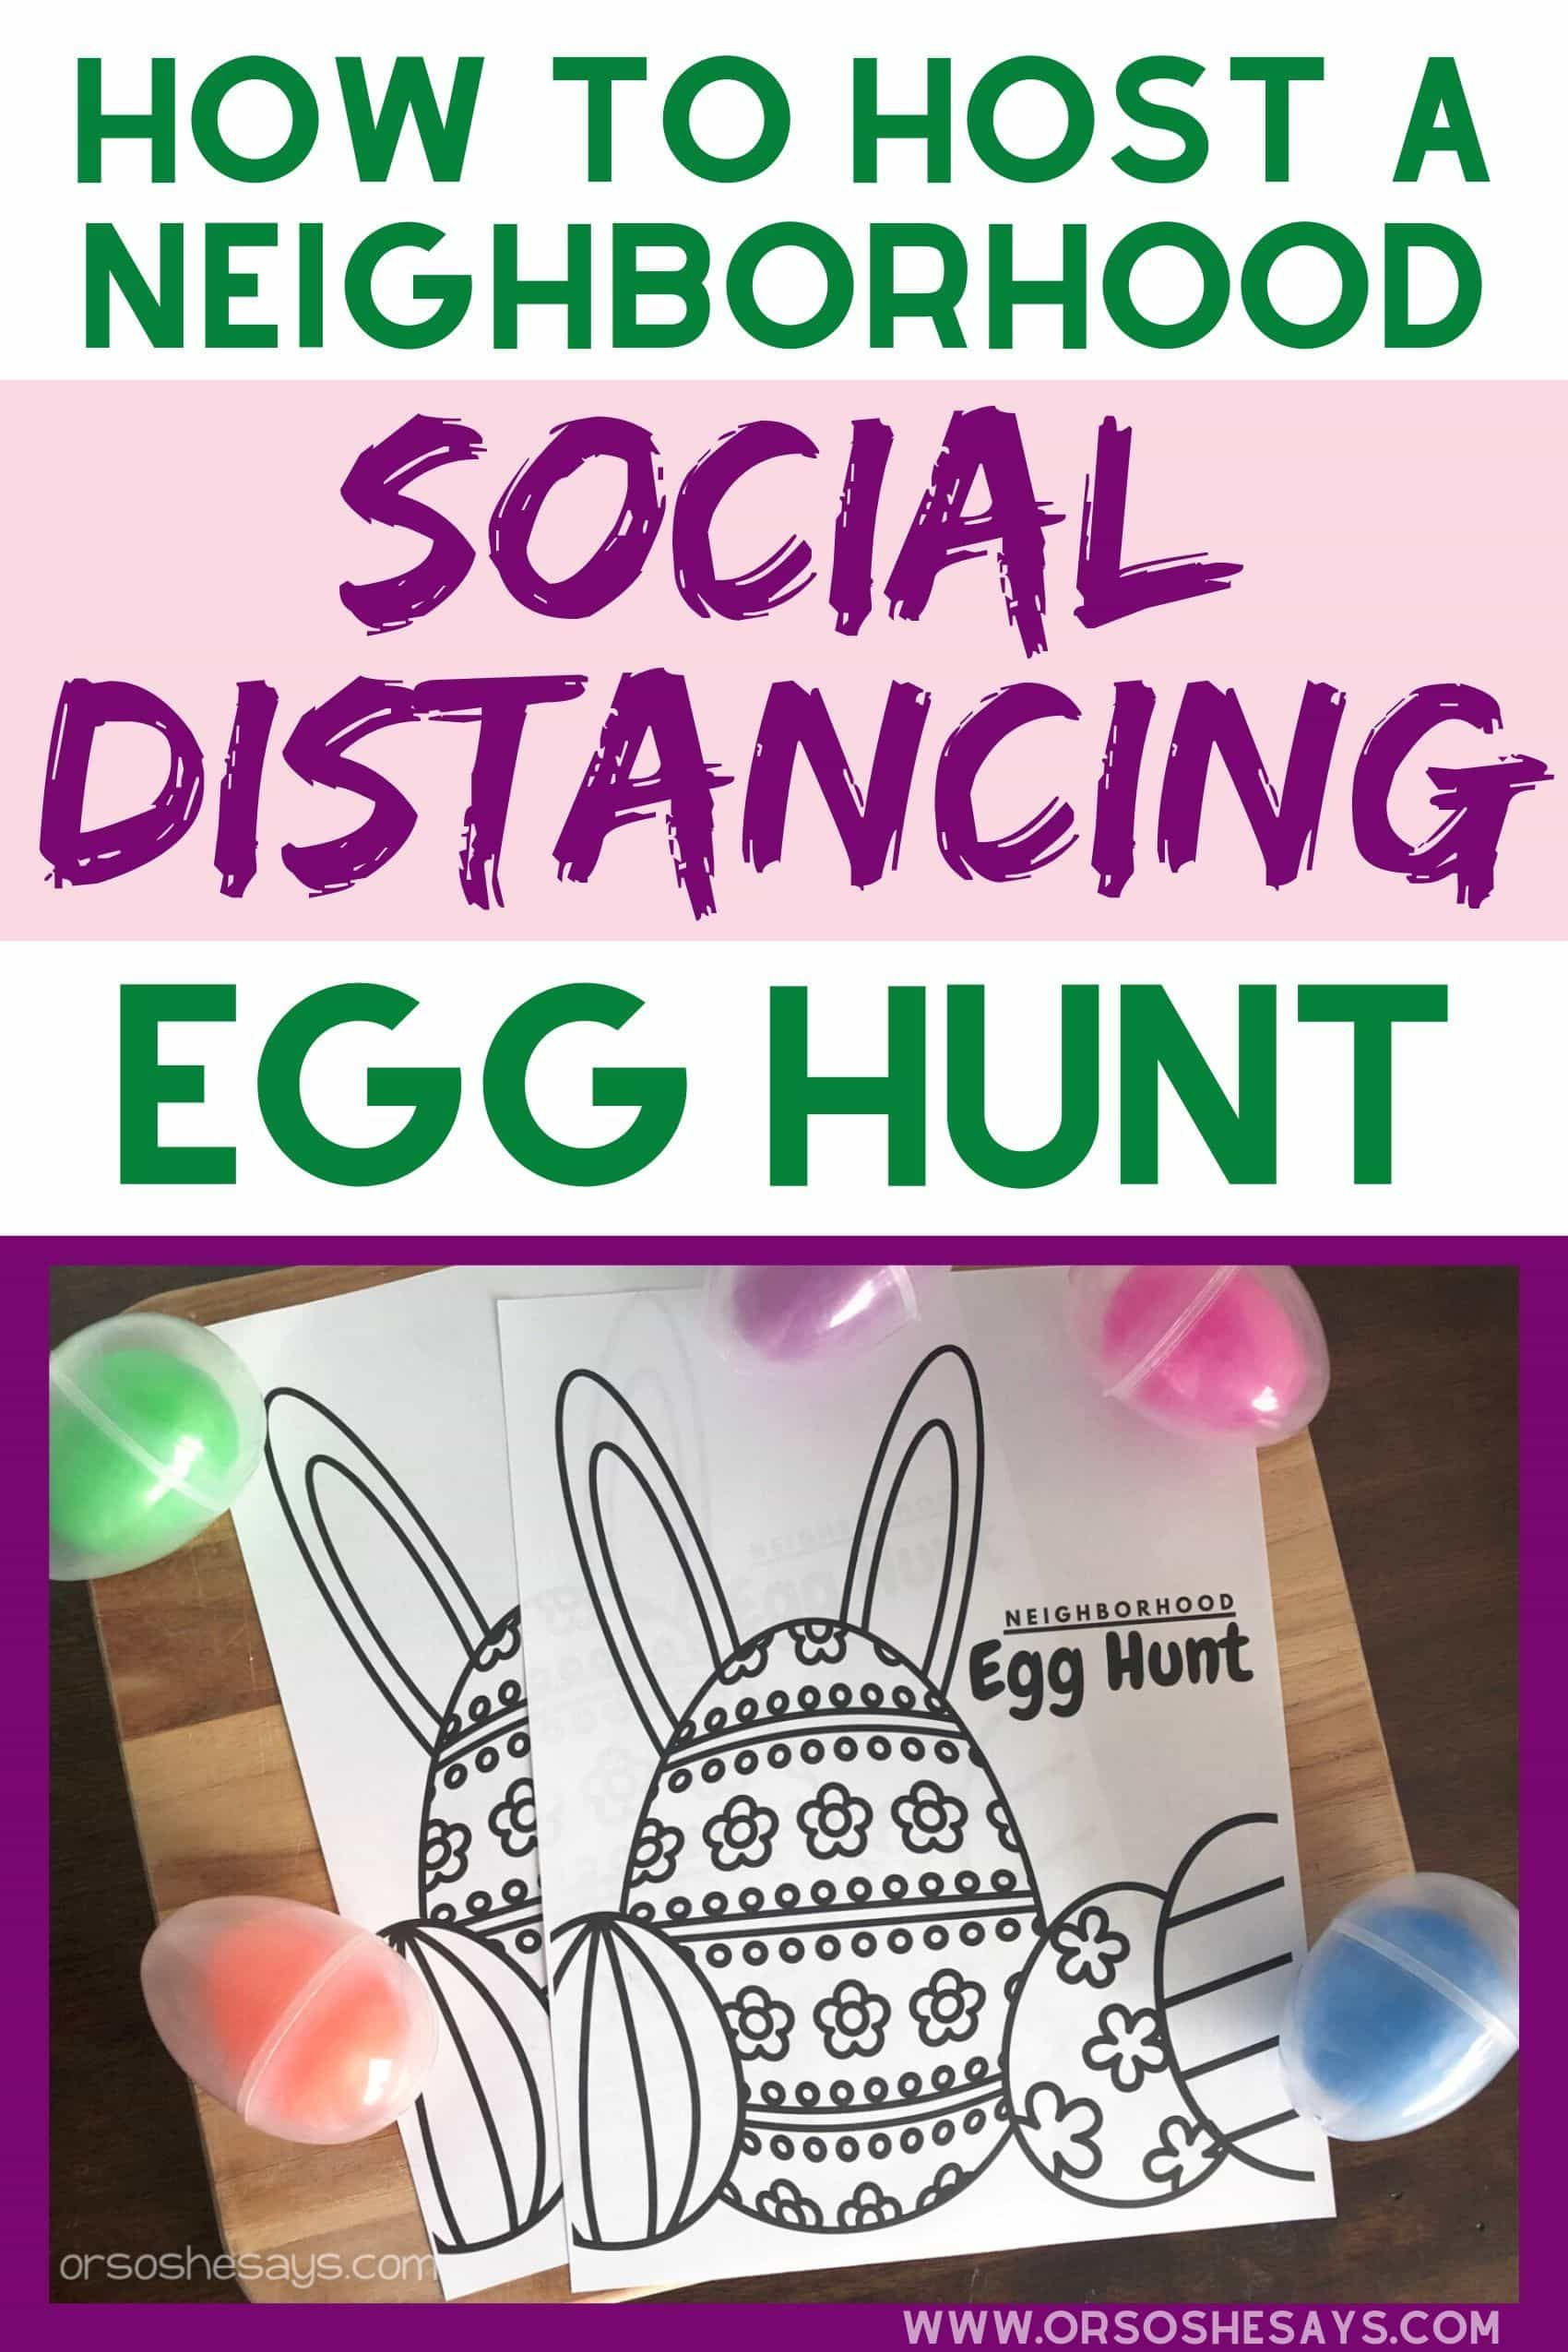 How To Host A Neighborhood Easter Egg Hunt While Social Distancing Easter Egg Hunt Activities Egg Hunt Easter Egg Hunt